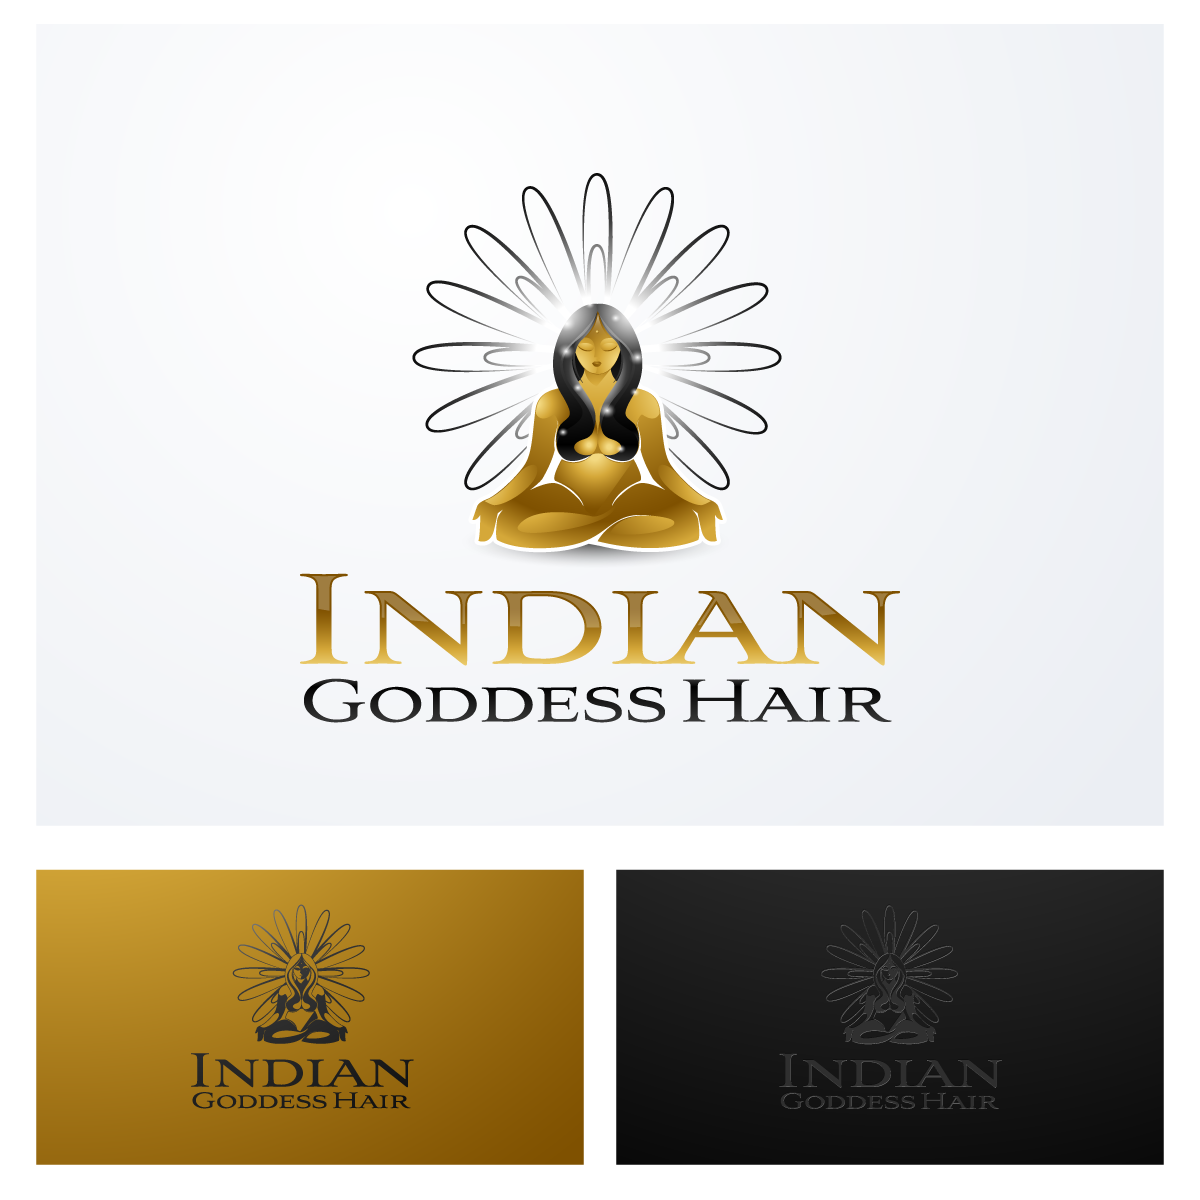 Logo Design by zesthar - Entry No. 15 in the Logo Design Contest Indian Goddess Hair LOGO DESIGN.